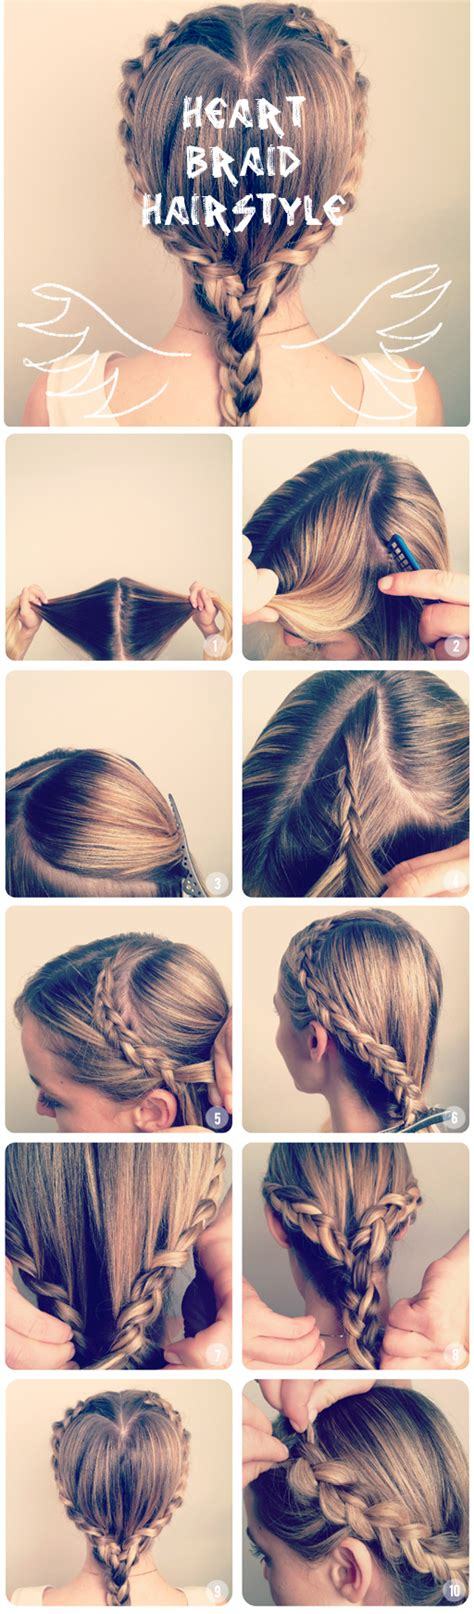 hair styles made into hearts how to make a heart braid hairstyle tutorials des tages